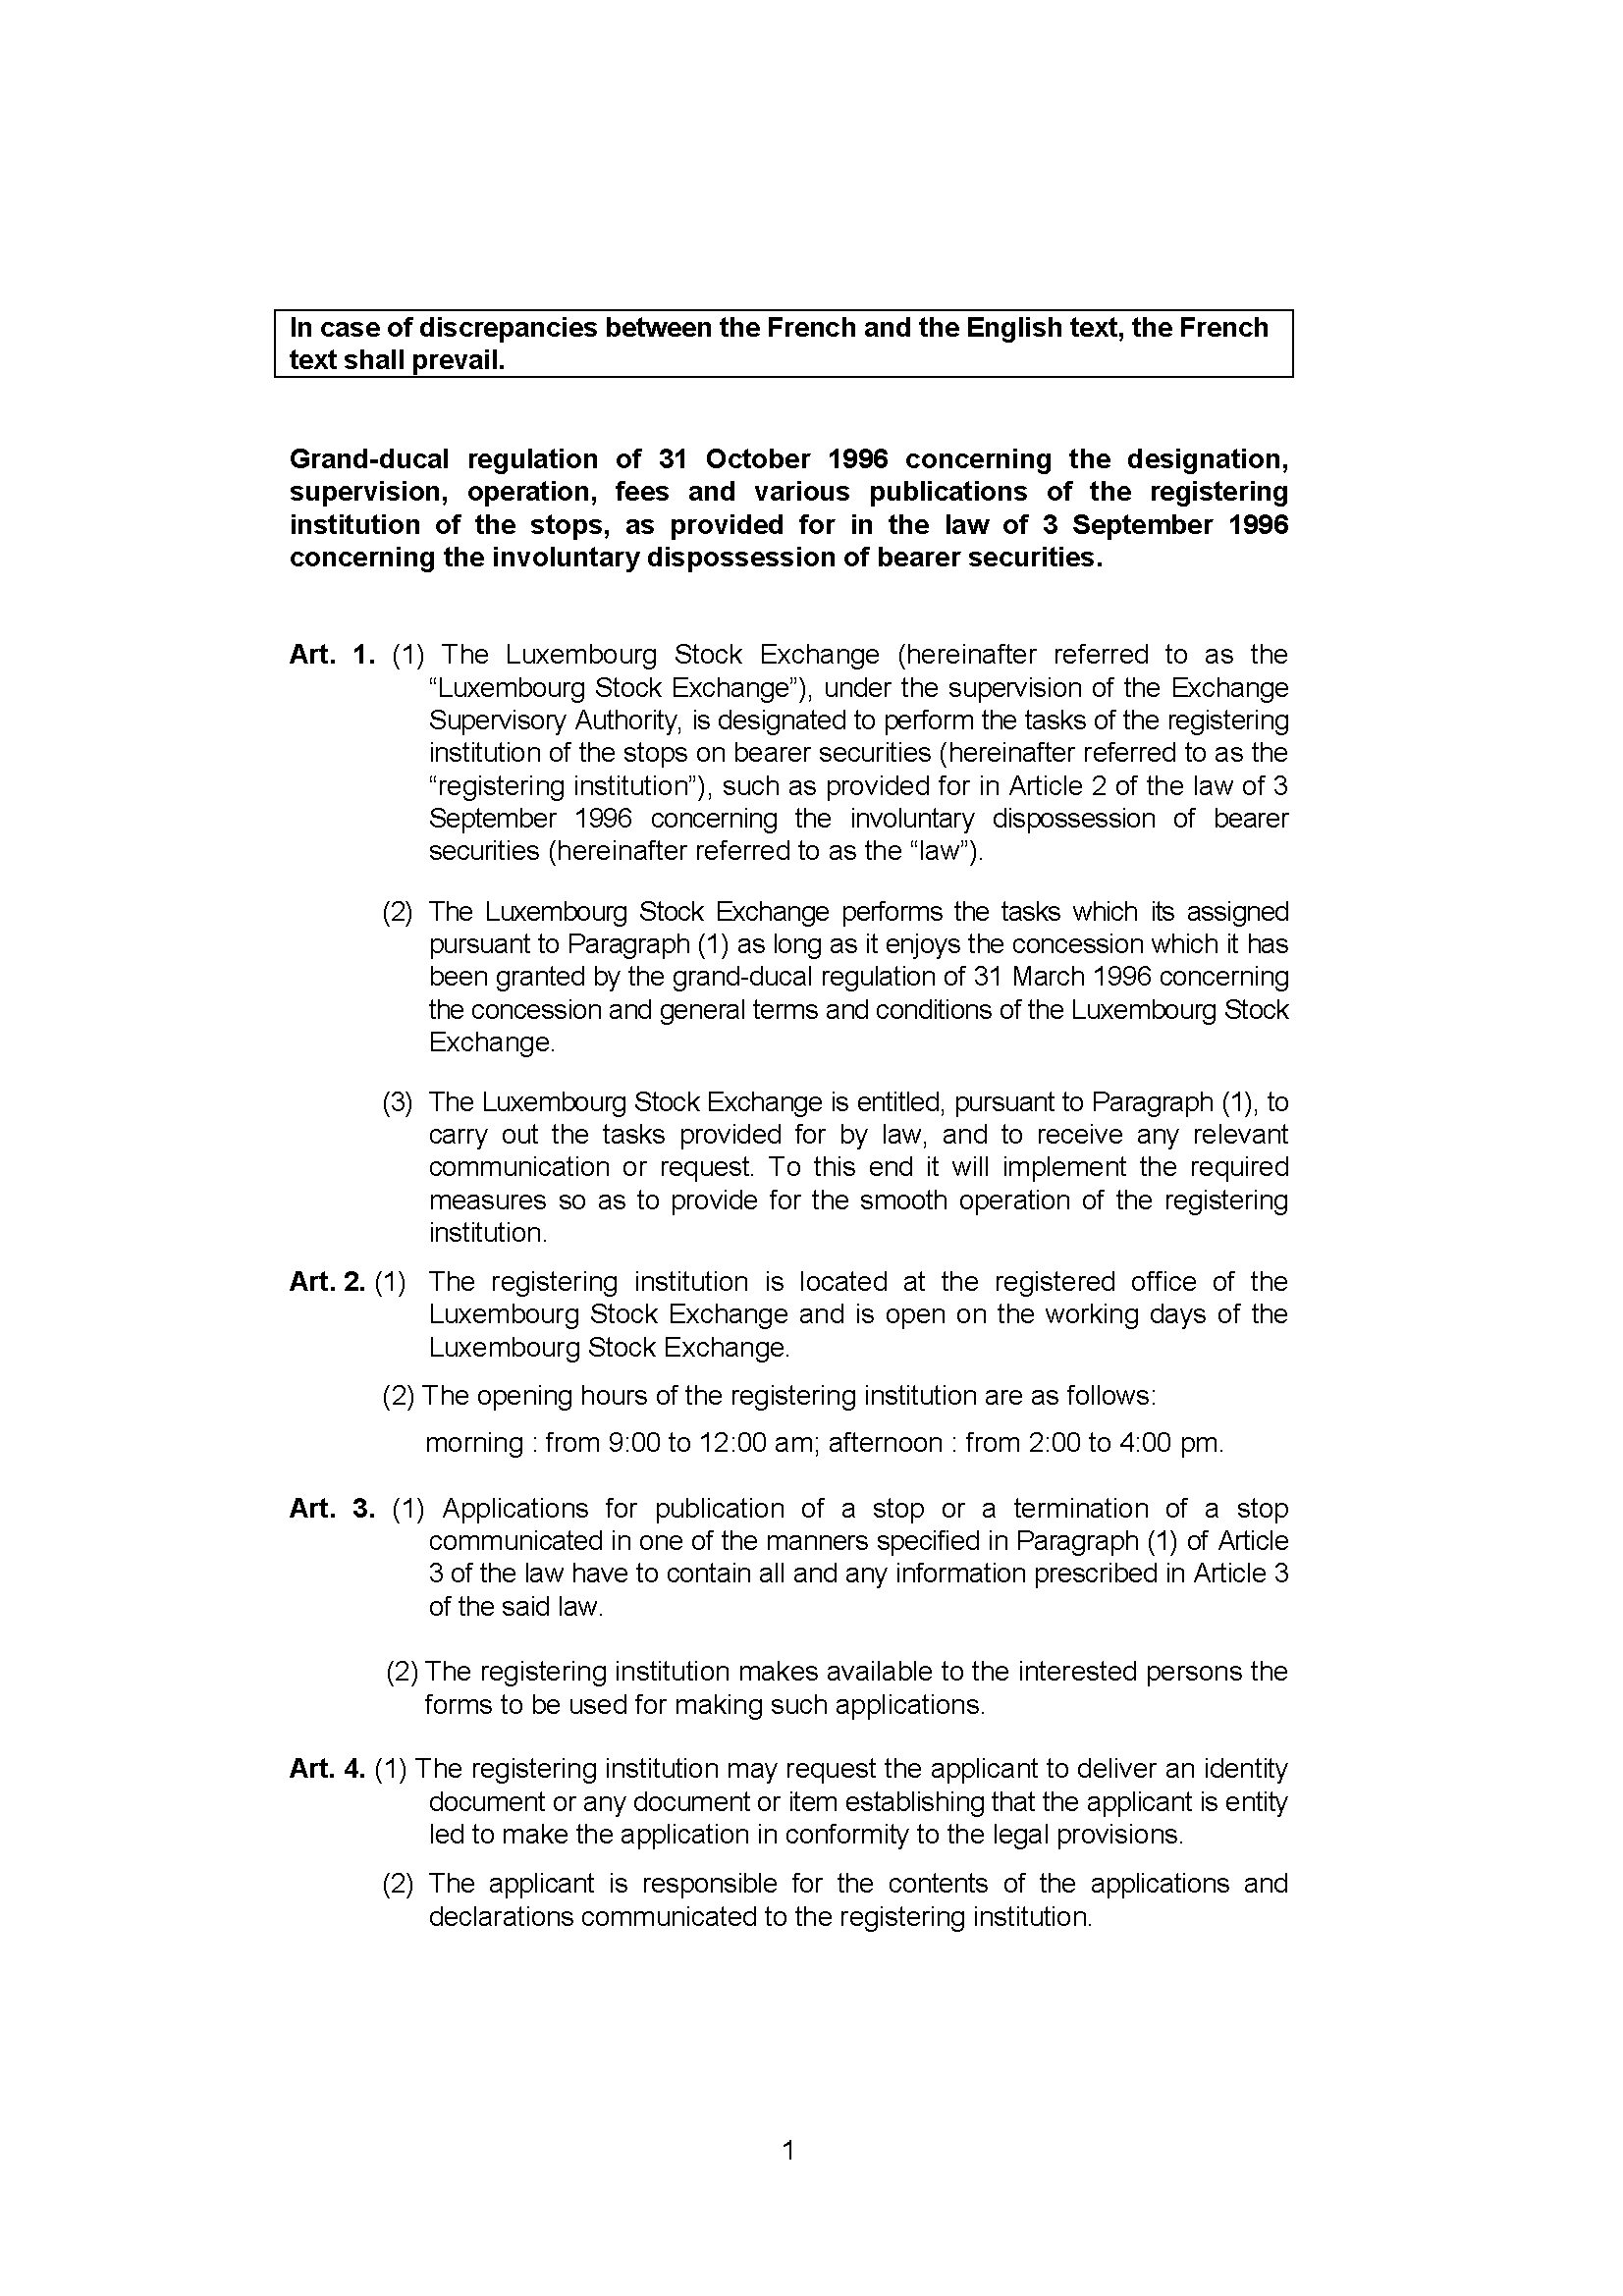 legislation-STOPS-GD_regulation_31oct1996.png